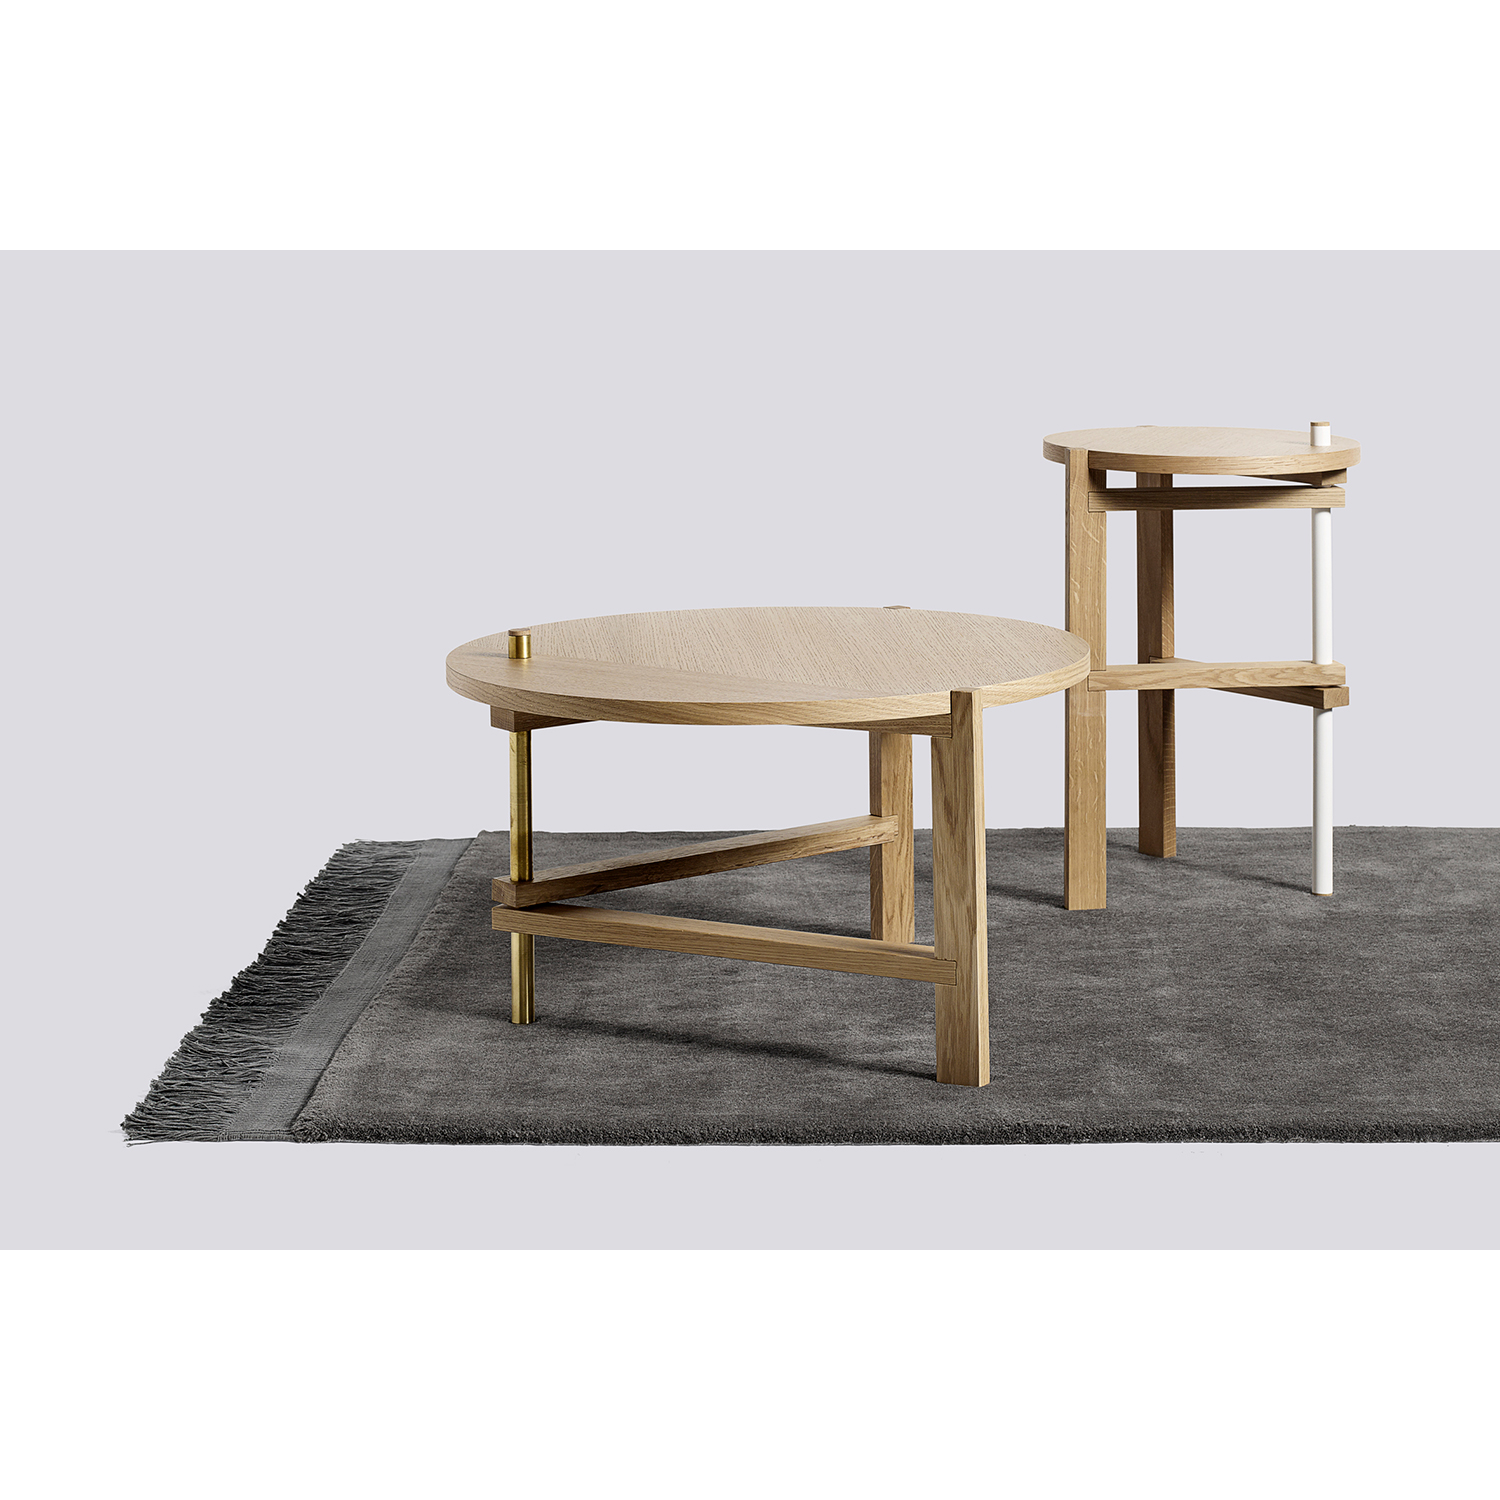 A side table Ø40, ek/vit